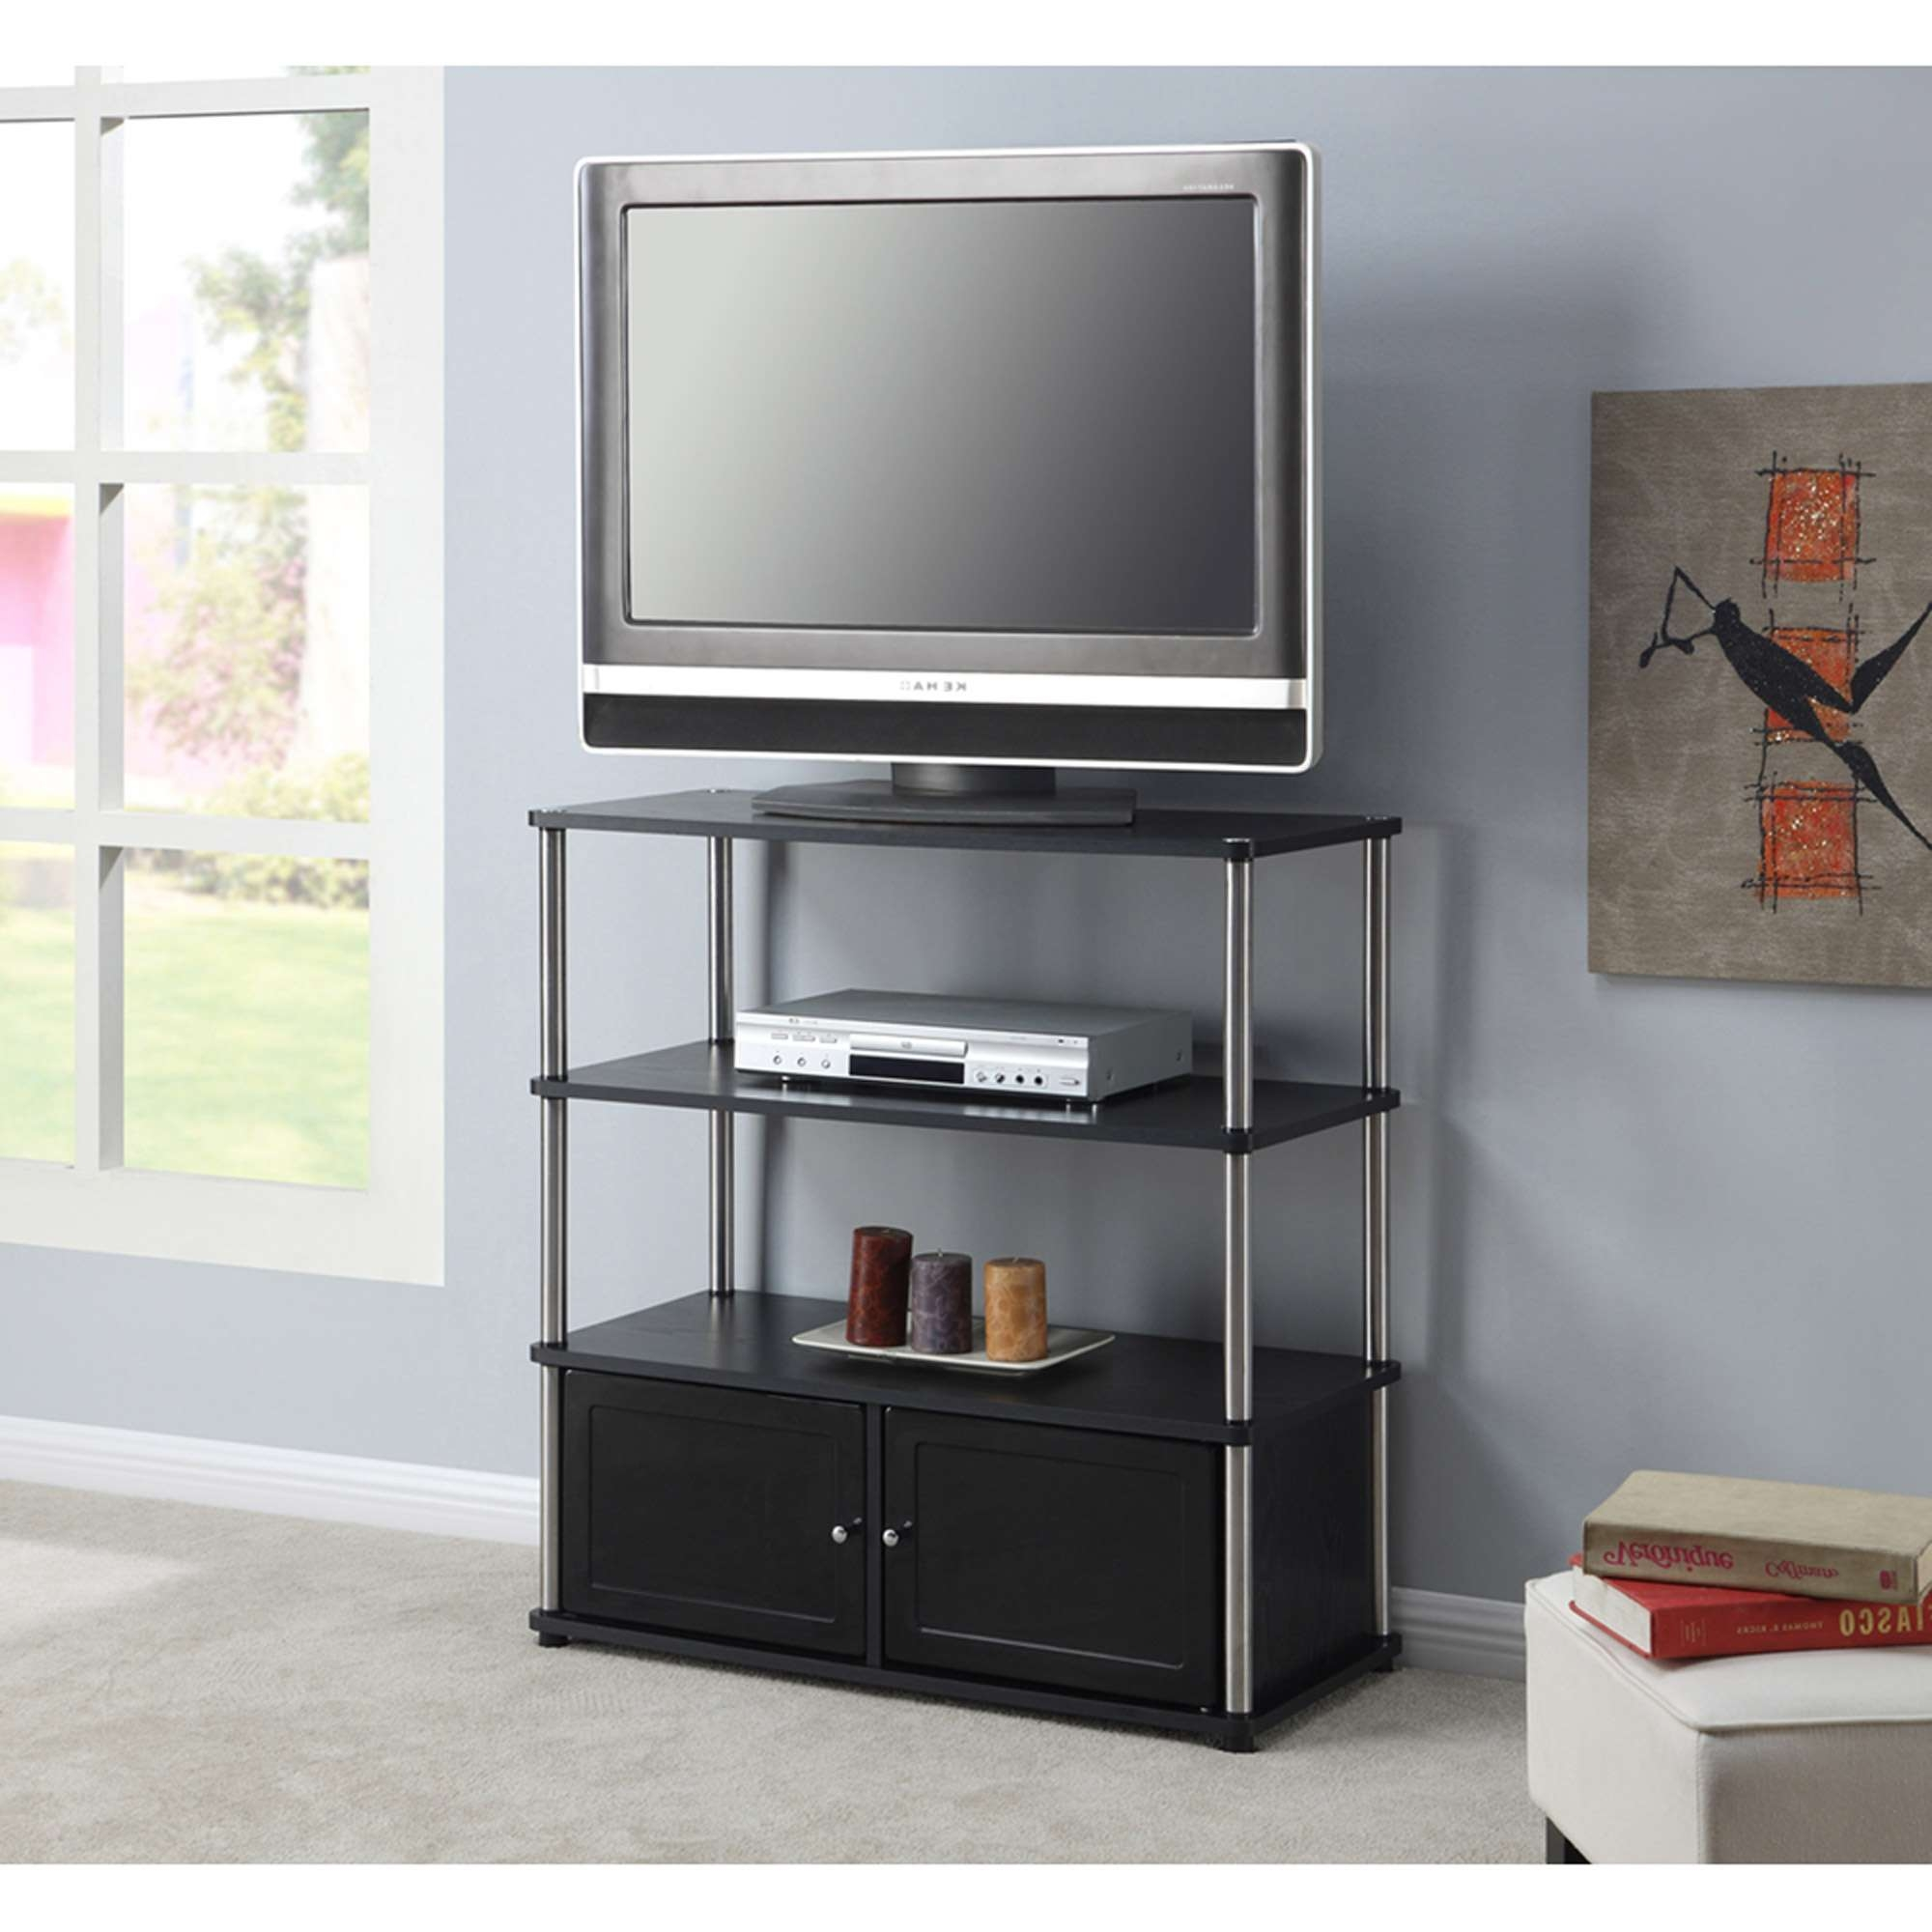 Tv Stands Inspiring Stand With Mount And Drawers Design Altra With Regard To Tall Skinny Tv Stands (View 12 of 15)